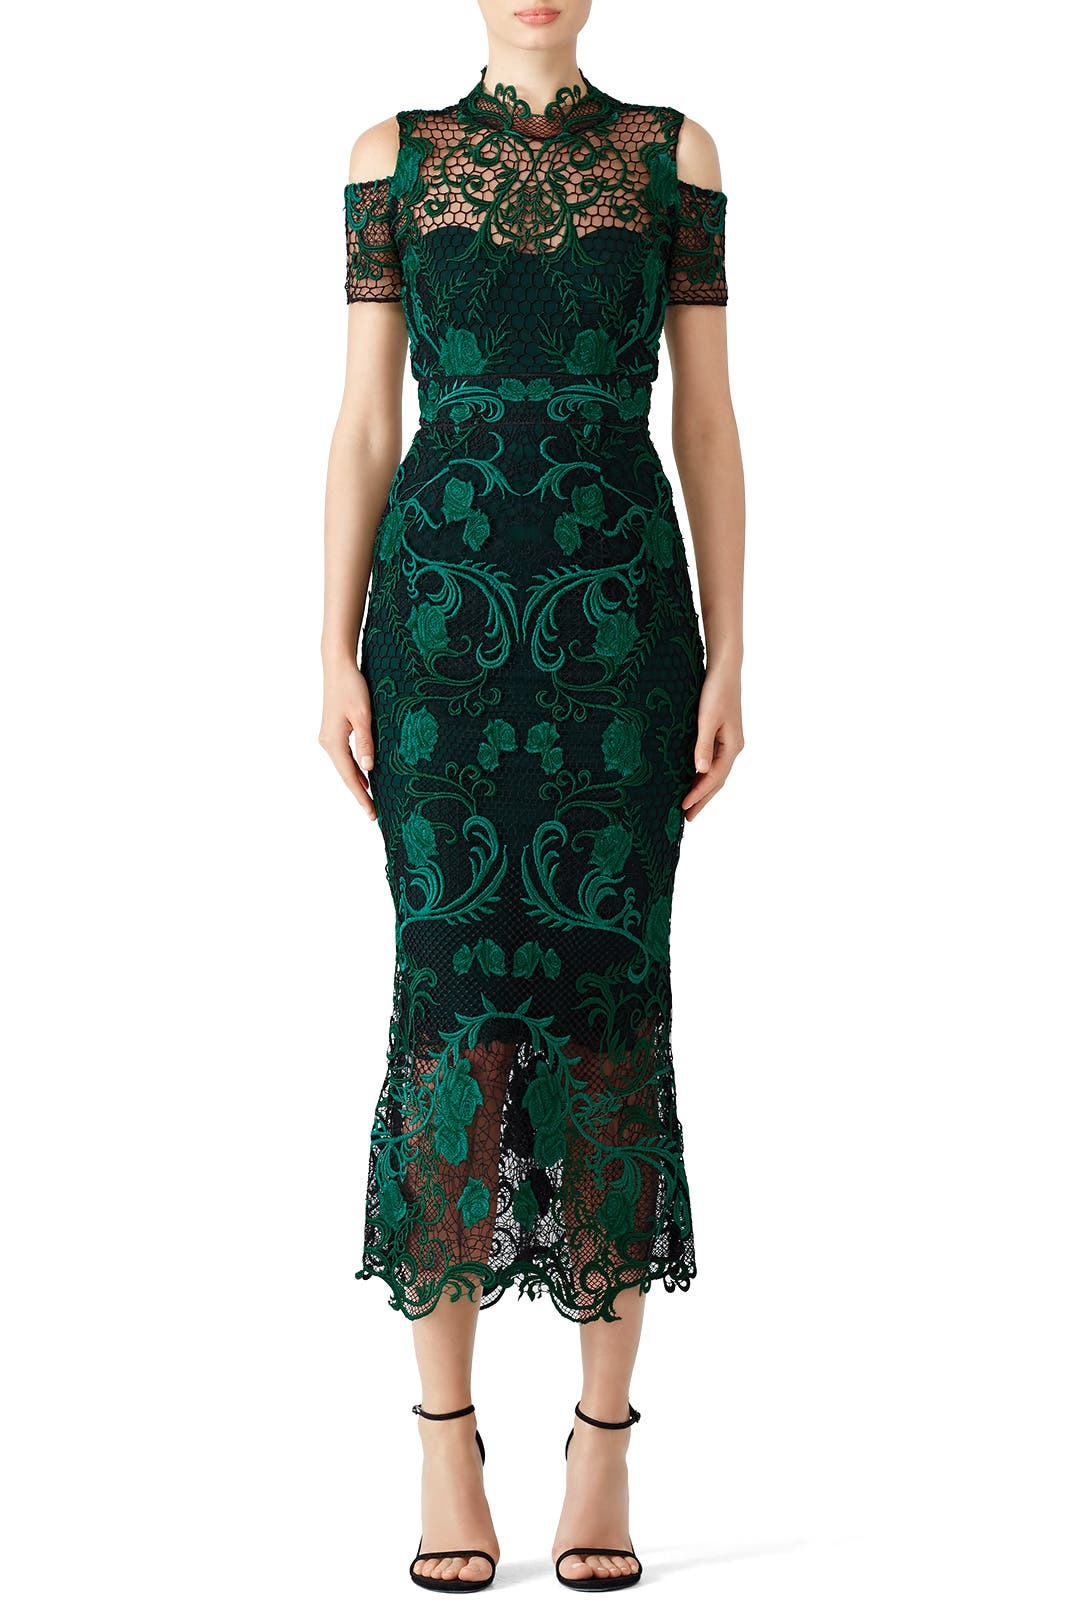 Green Lace Cocktail Dress By Marchesa Notte For 100